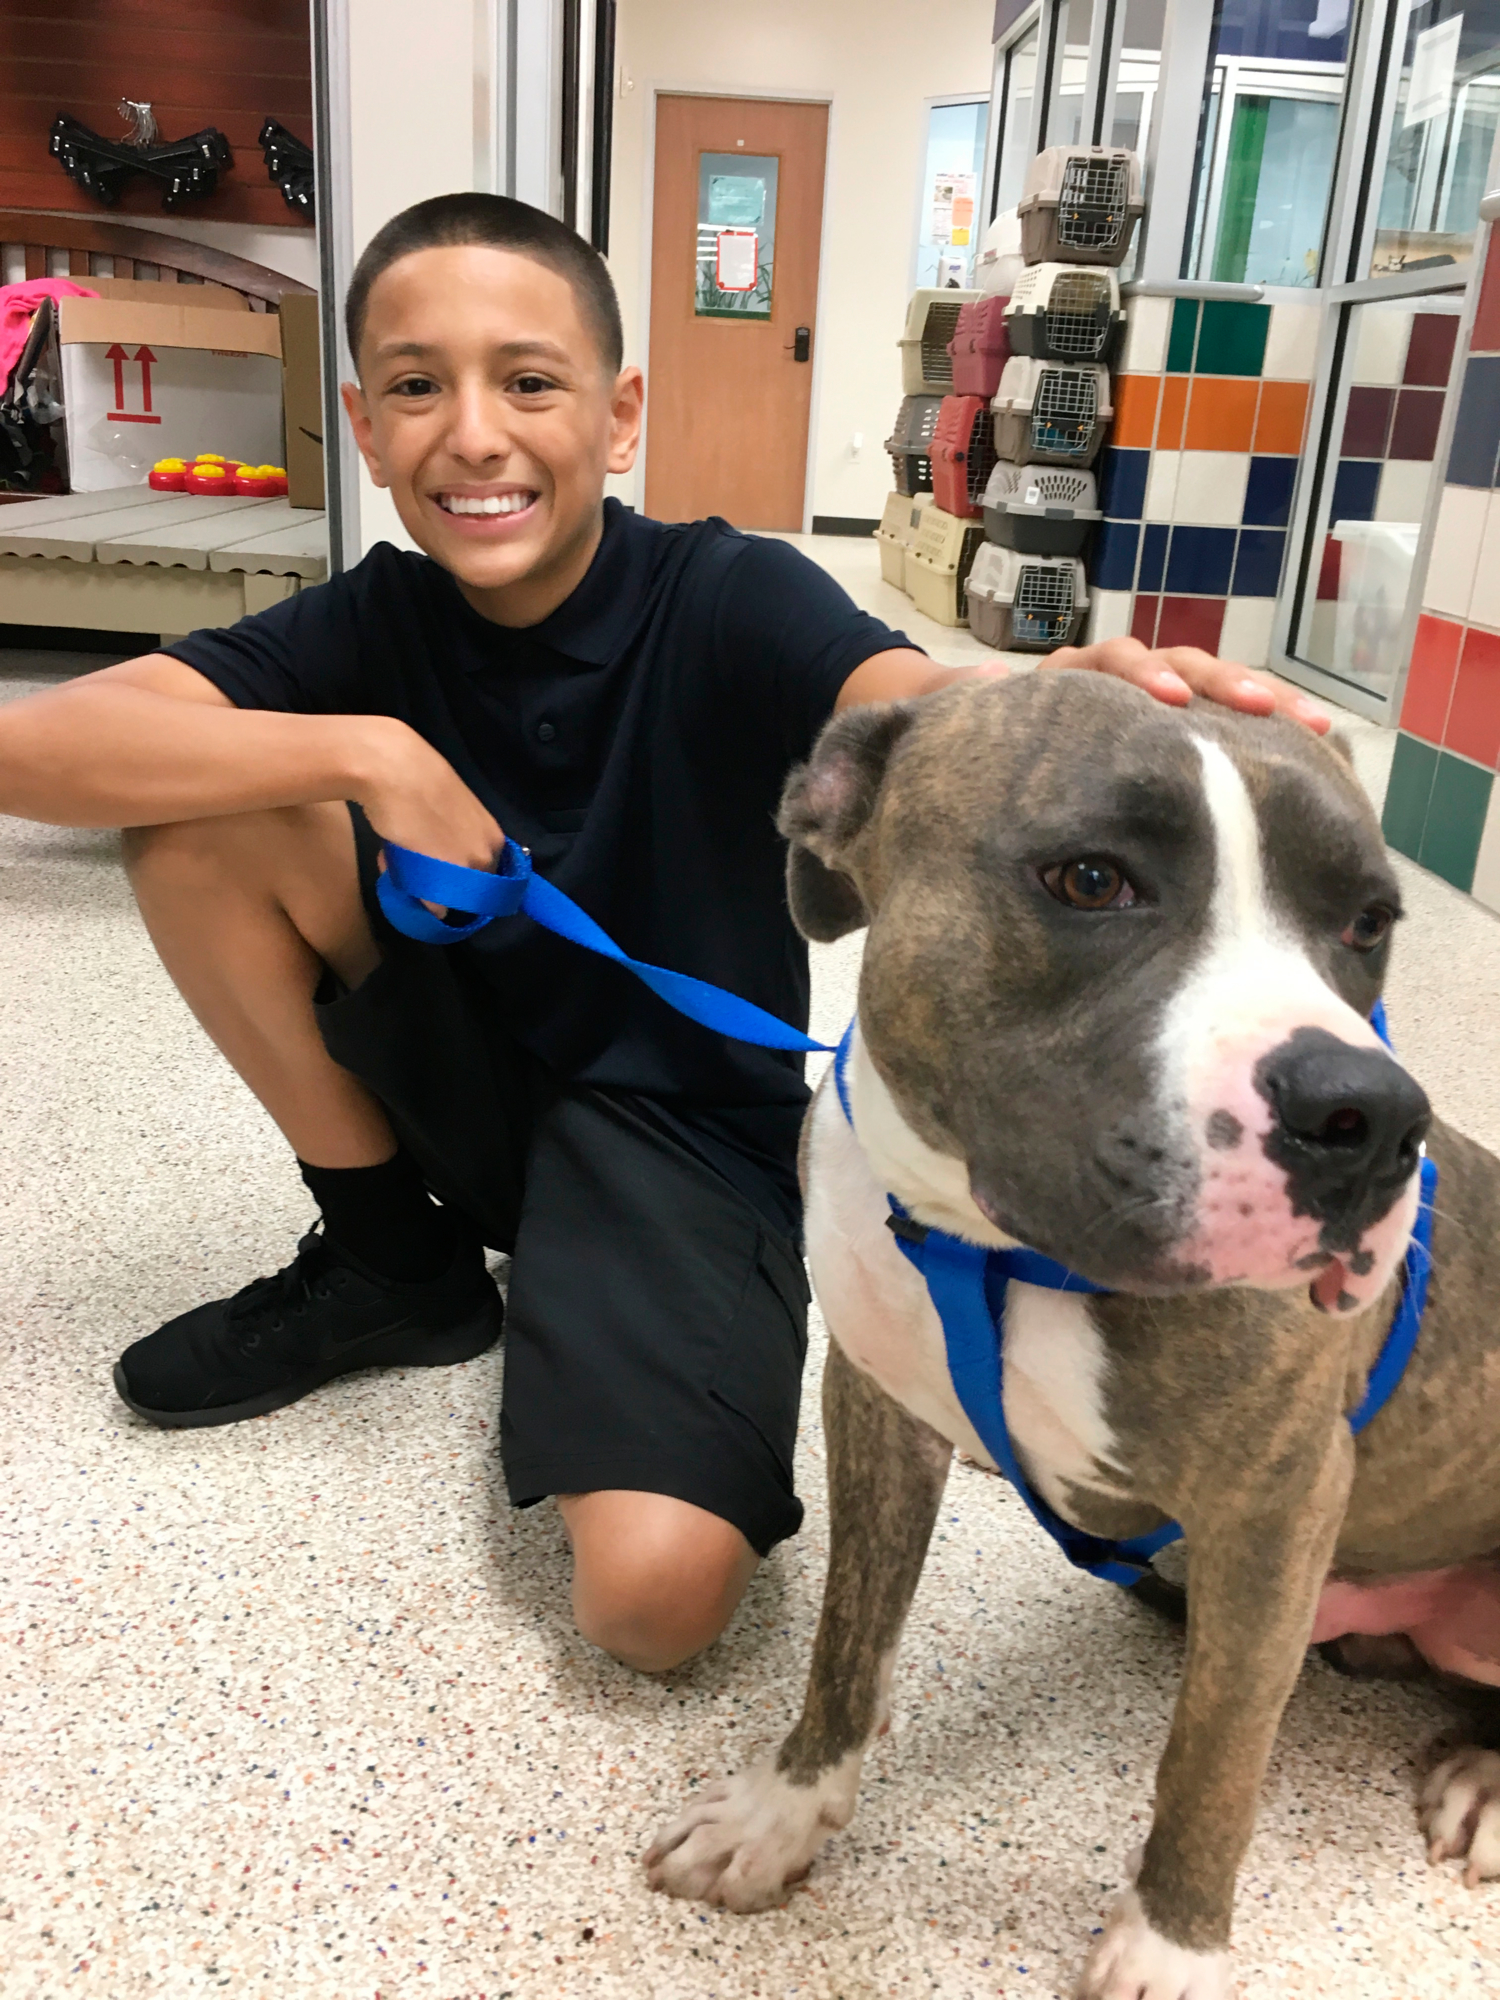 Tank&HumanBrother_Credit-Houston Humane Society_20180509_preview_maxWidth_2000_maxHeight_2000_ppi_300_quality_100_embedMetadata_true